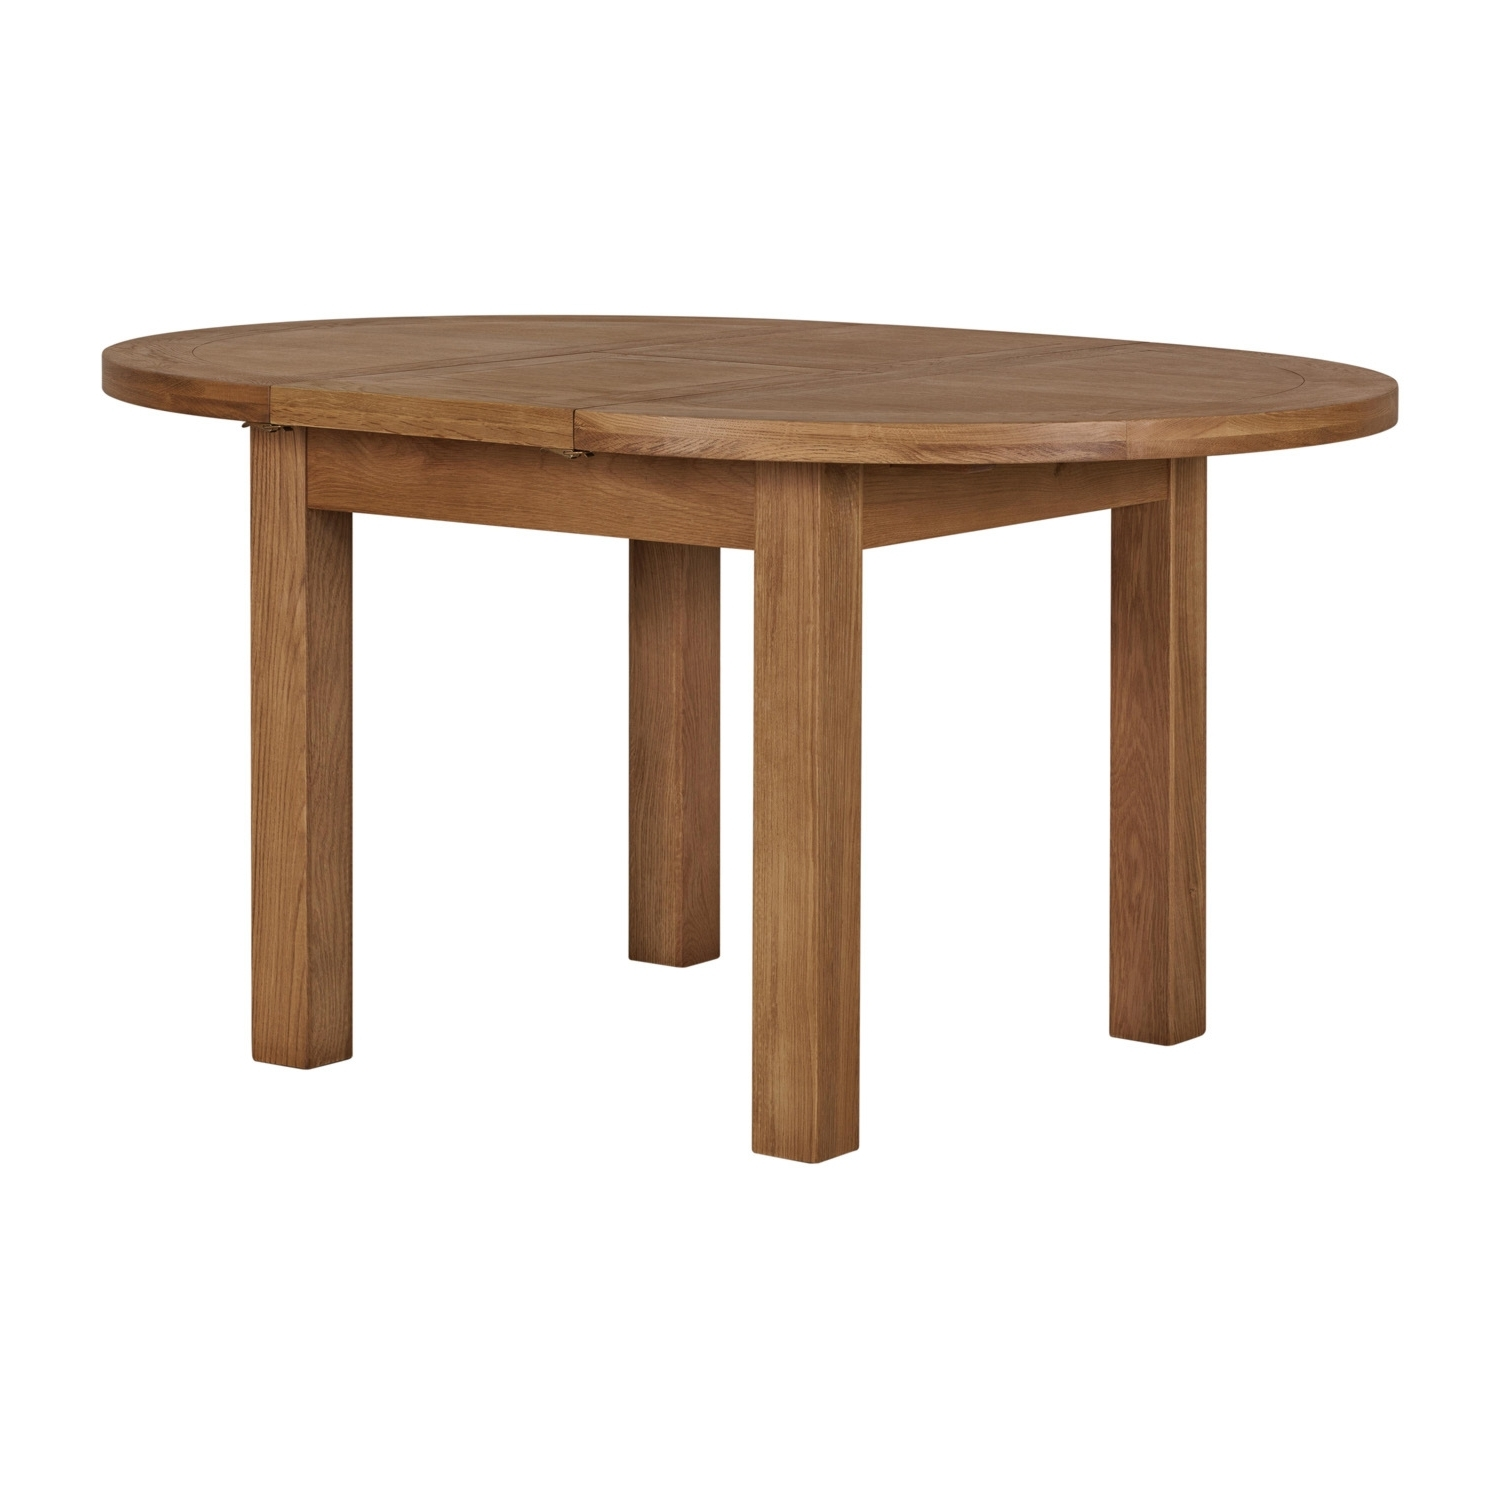 Round Extending Oak Dining Tables And Chairs Inside Most Popular Kinsale Round Extending Dining Table (View 18 of 25)